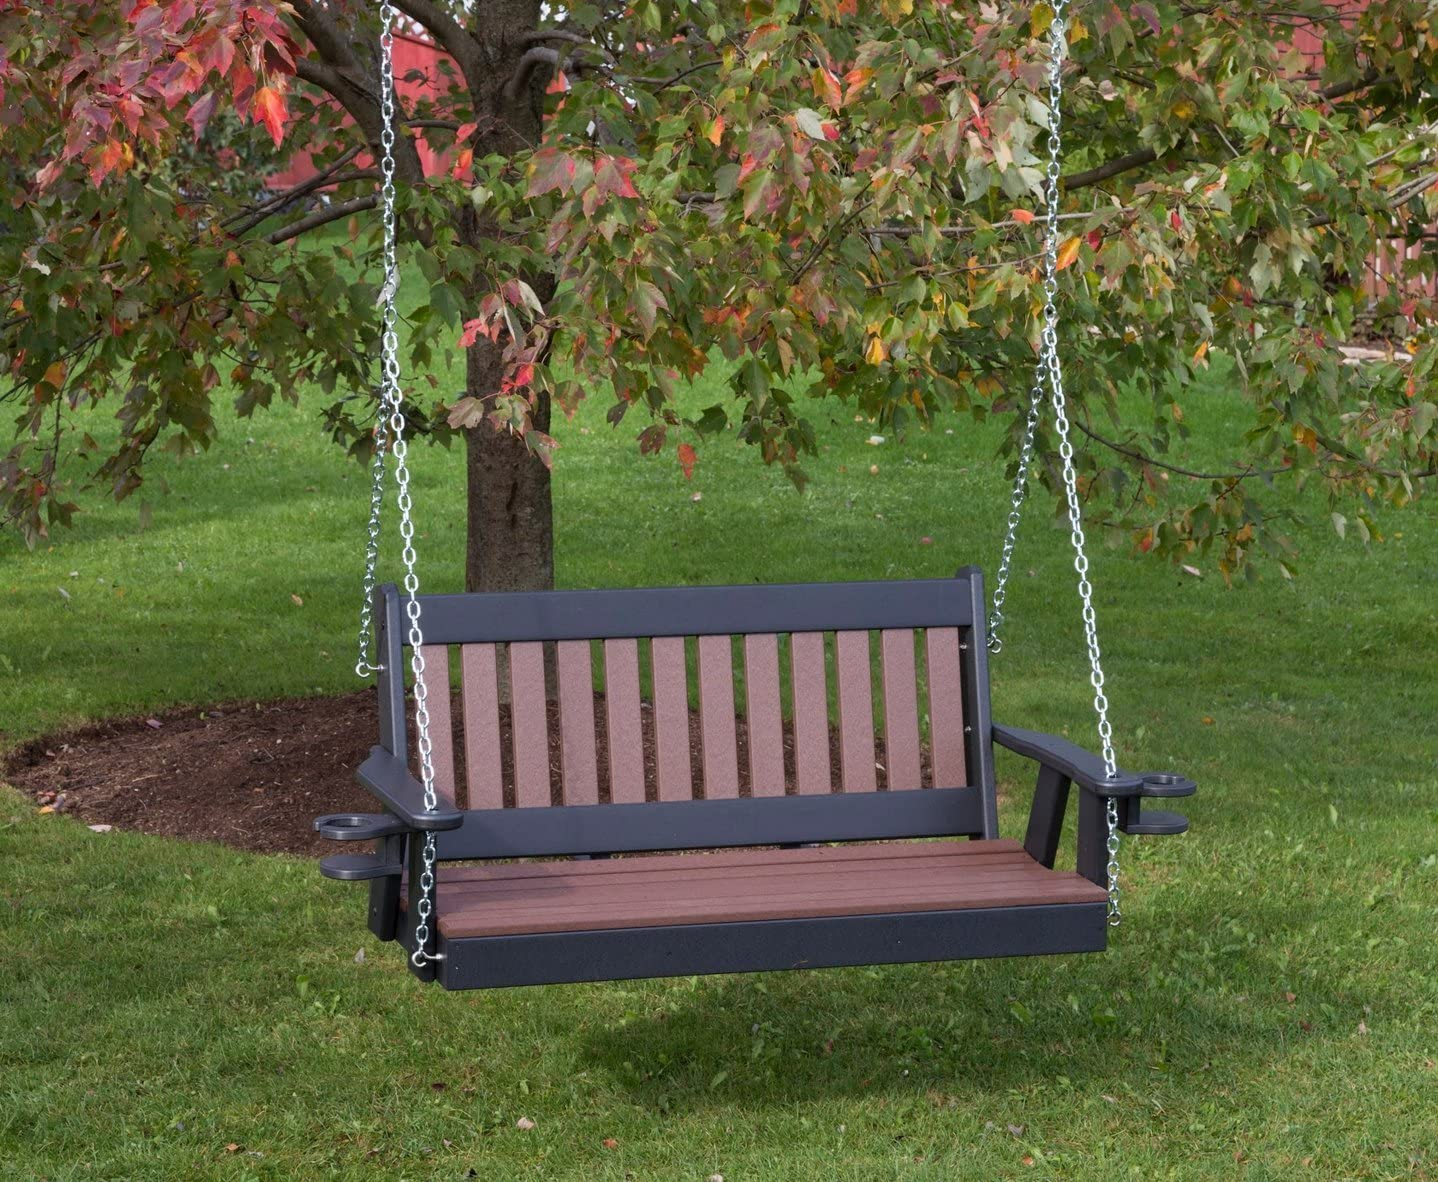 Ecommersify Inc 5FT-Cedar-Poly Lumber Mission Porch Swing